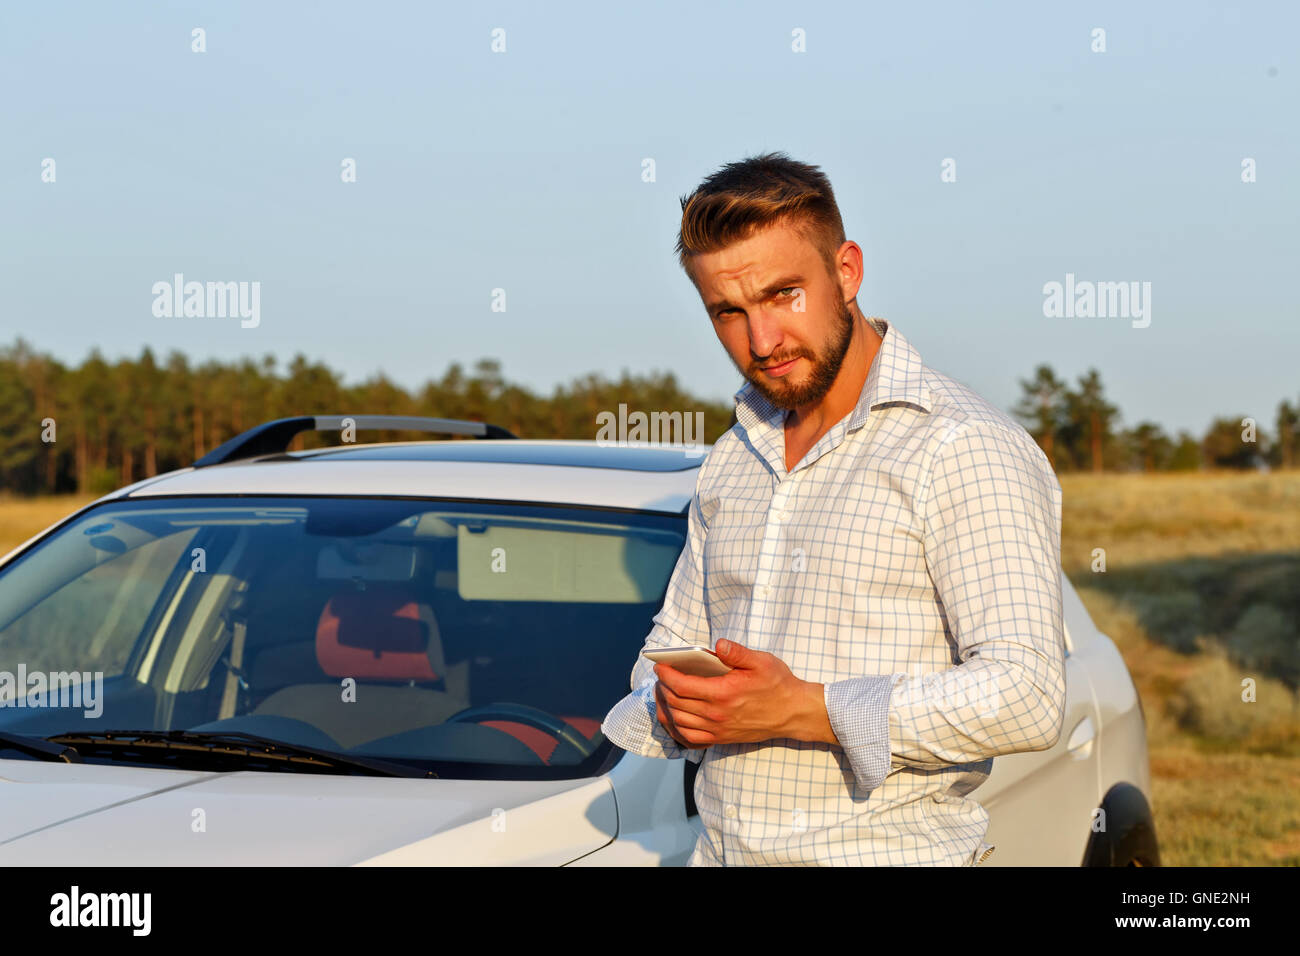 A young handsome man standing in front of the car. A man holding a smartphone. Always connected. - Stock Image